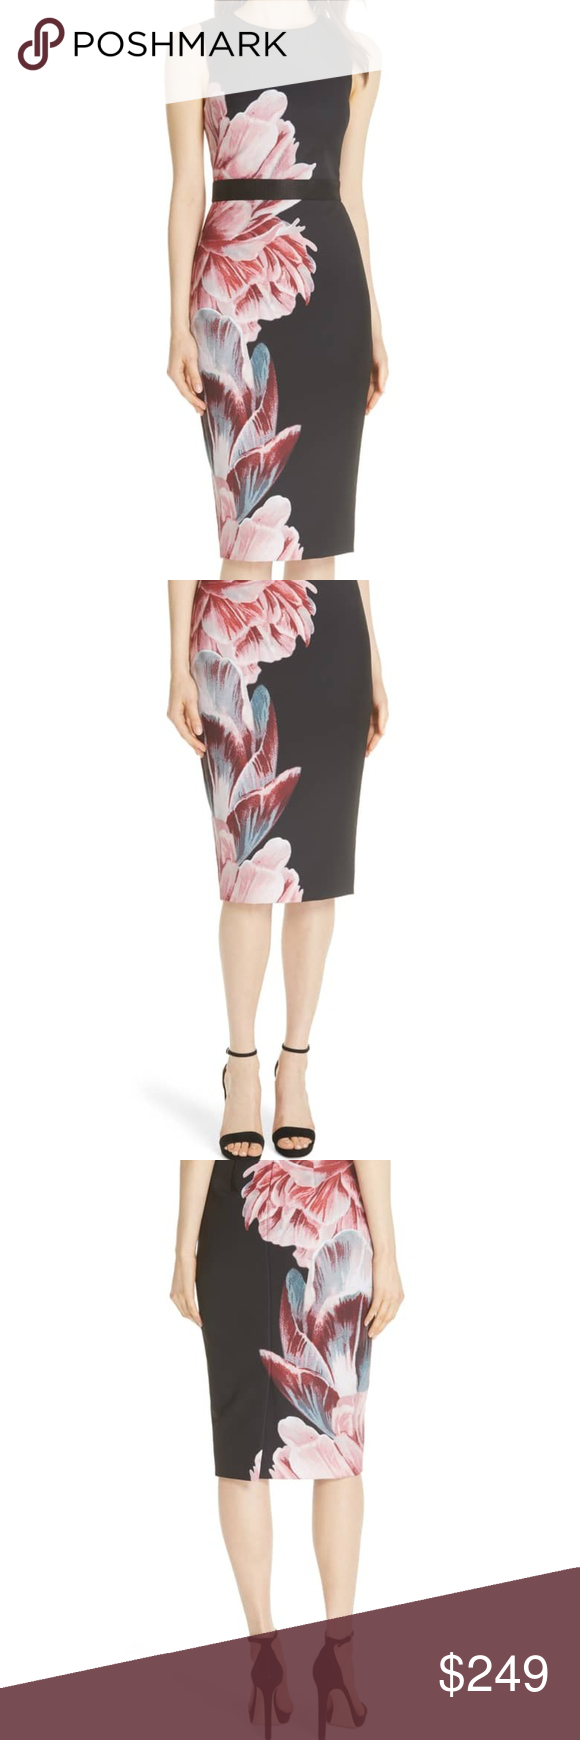 1eed3682b7e9 Ted Baker London Xanadu Tranquility Sheath Dress The garden grows  gorgeously in this body-con